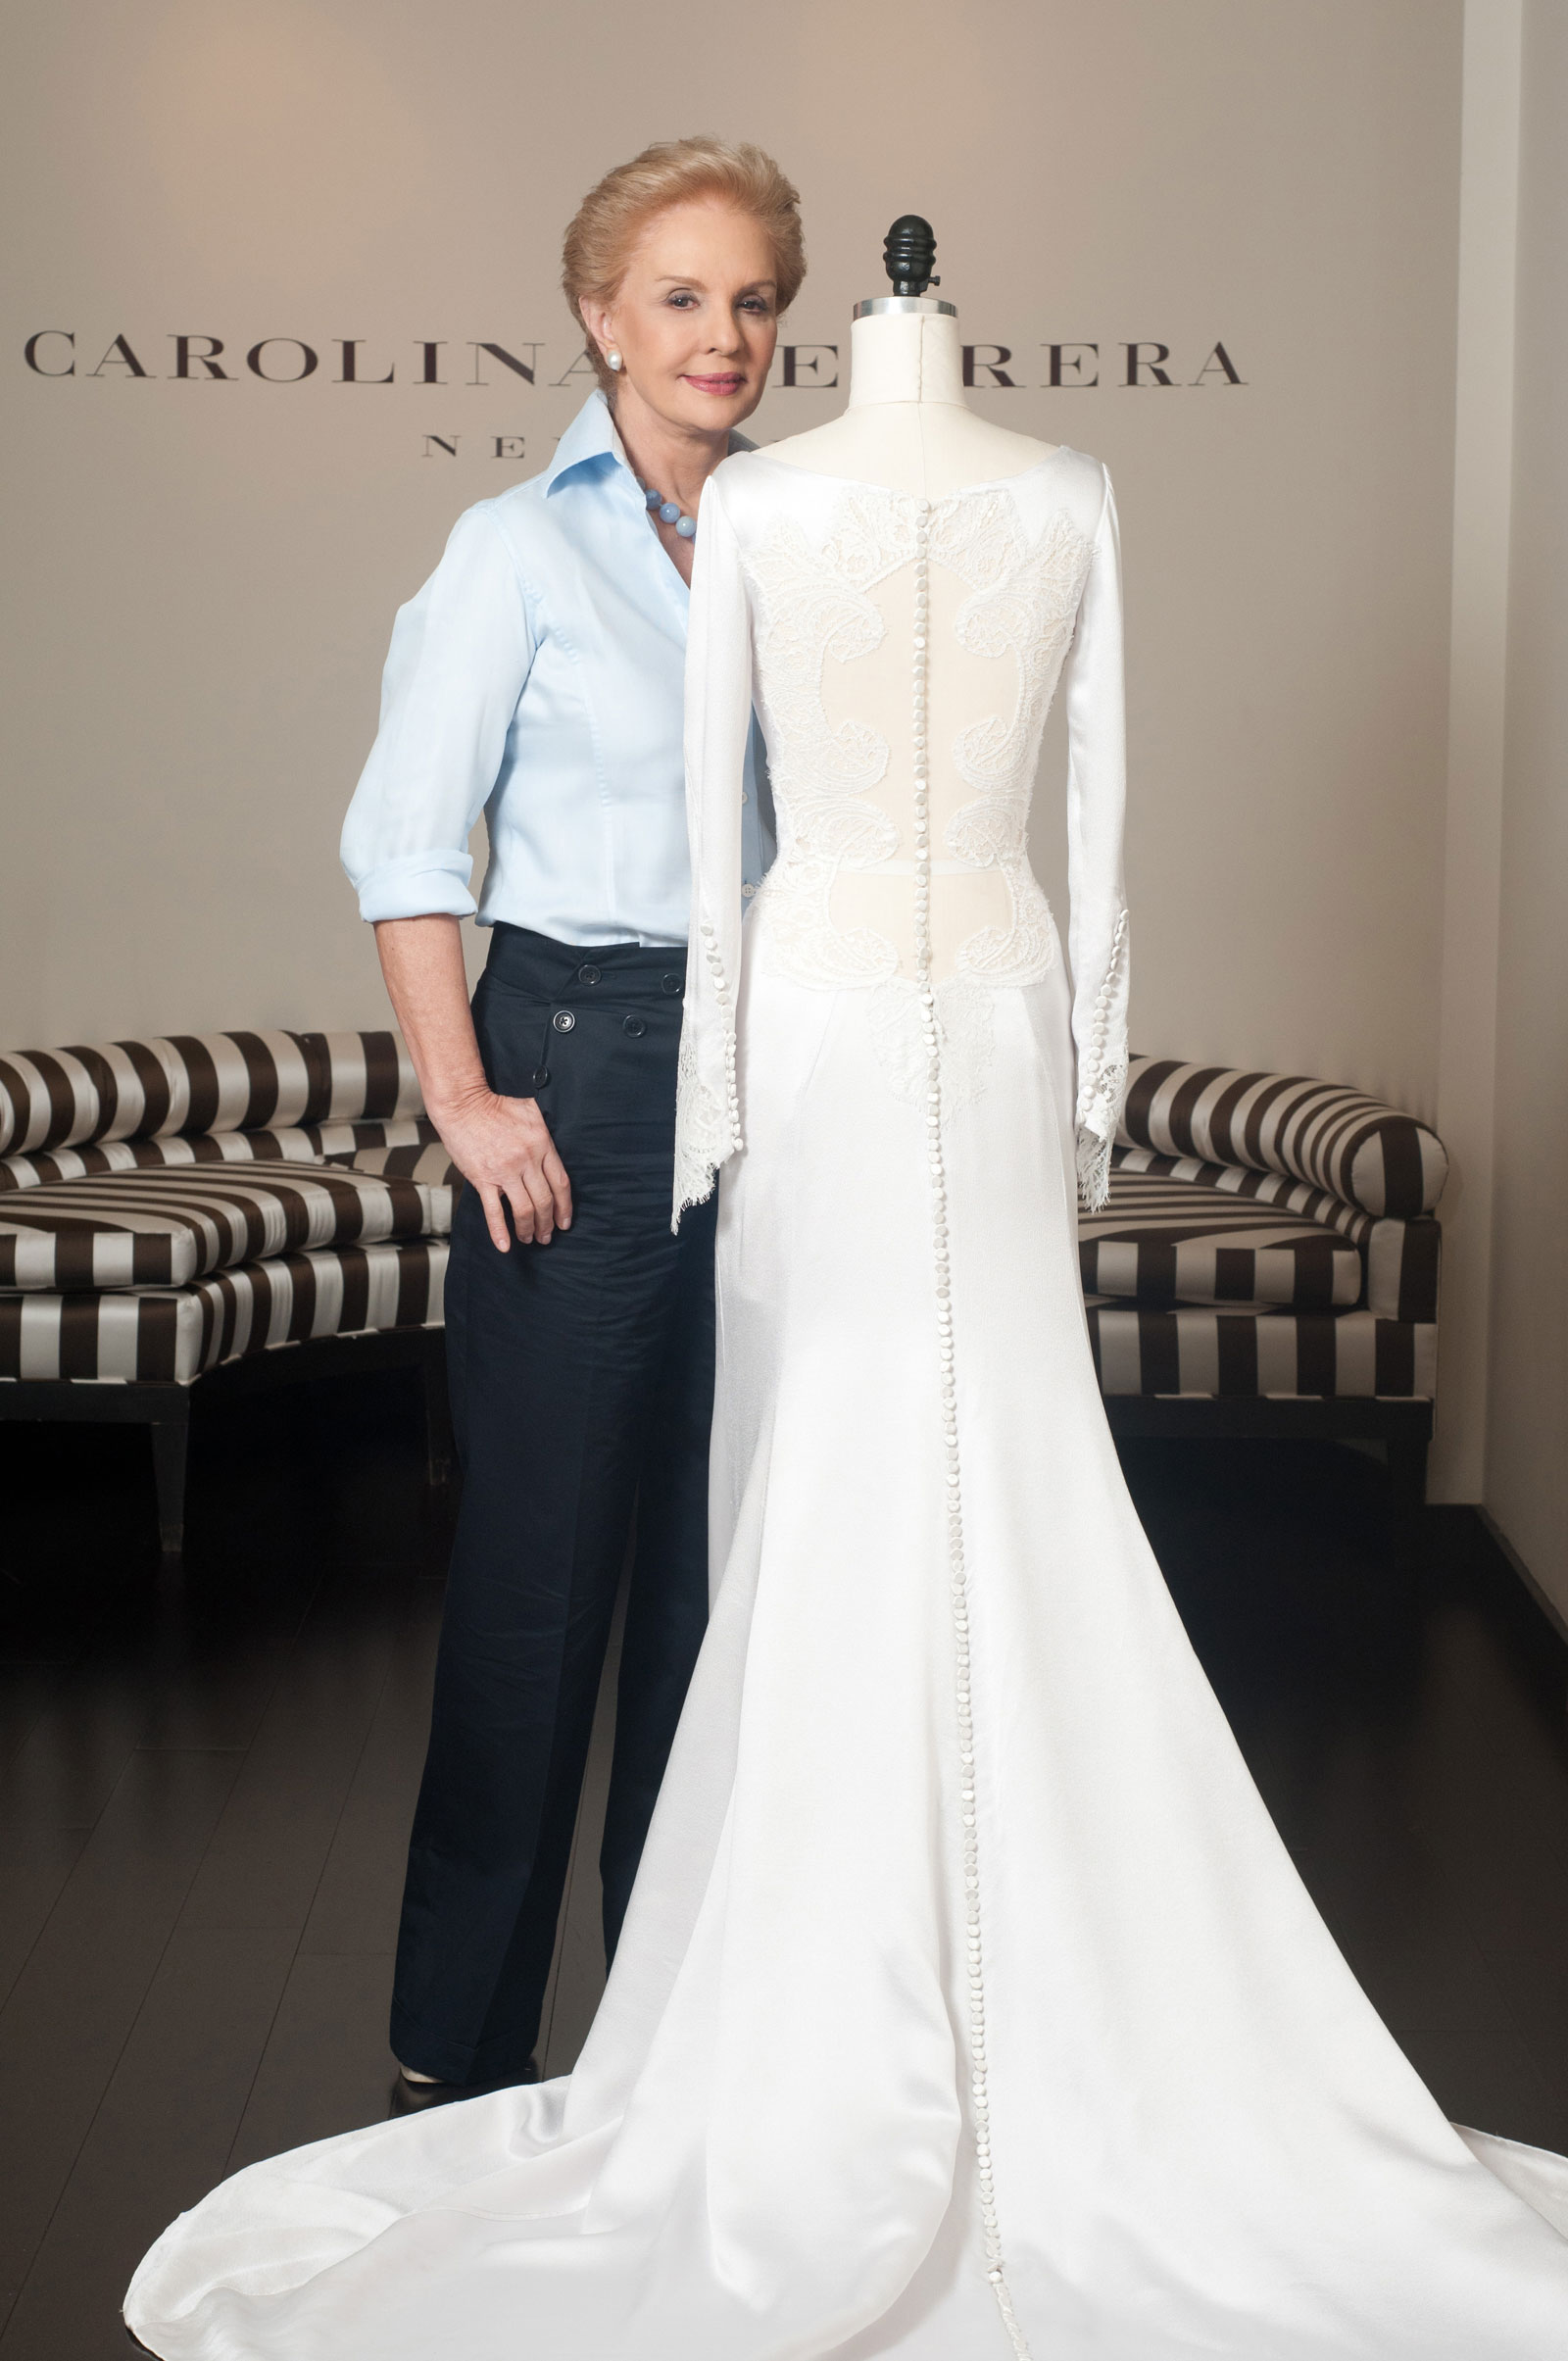 carolina-herrera-with-bella-swan-s-twilight-wedding-dress.jpg